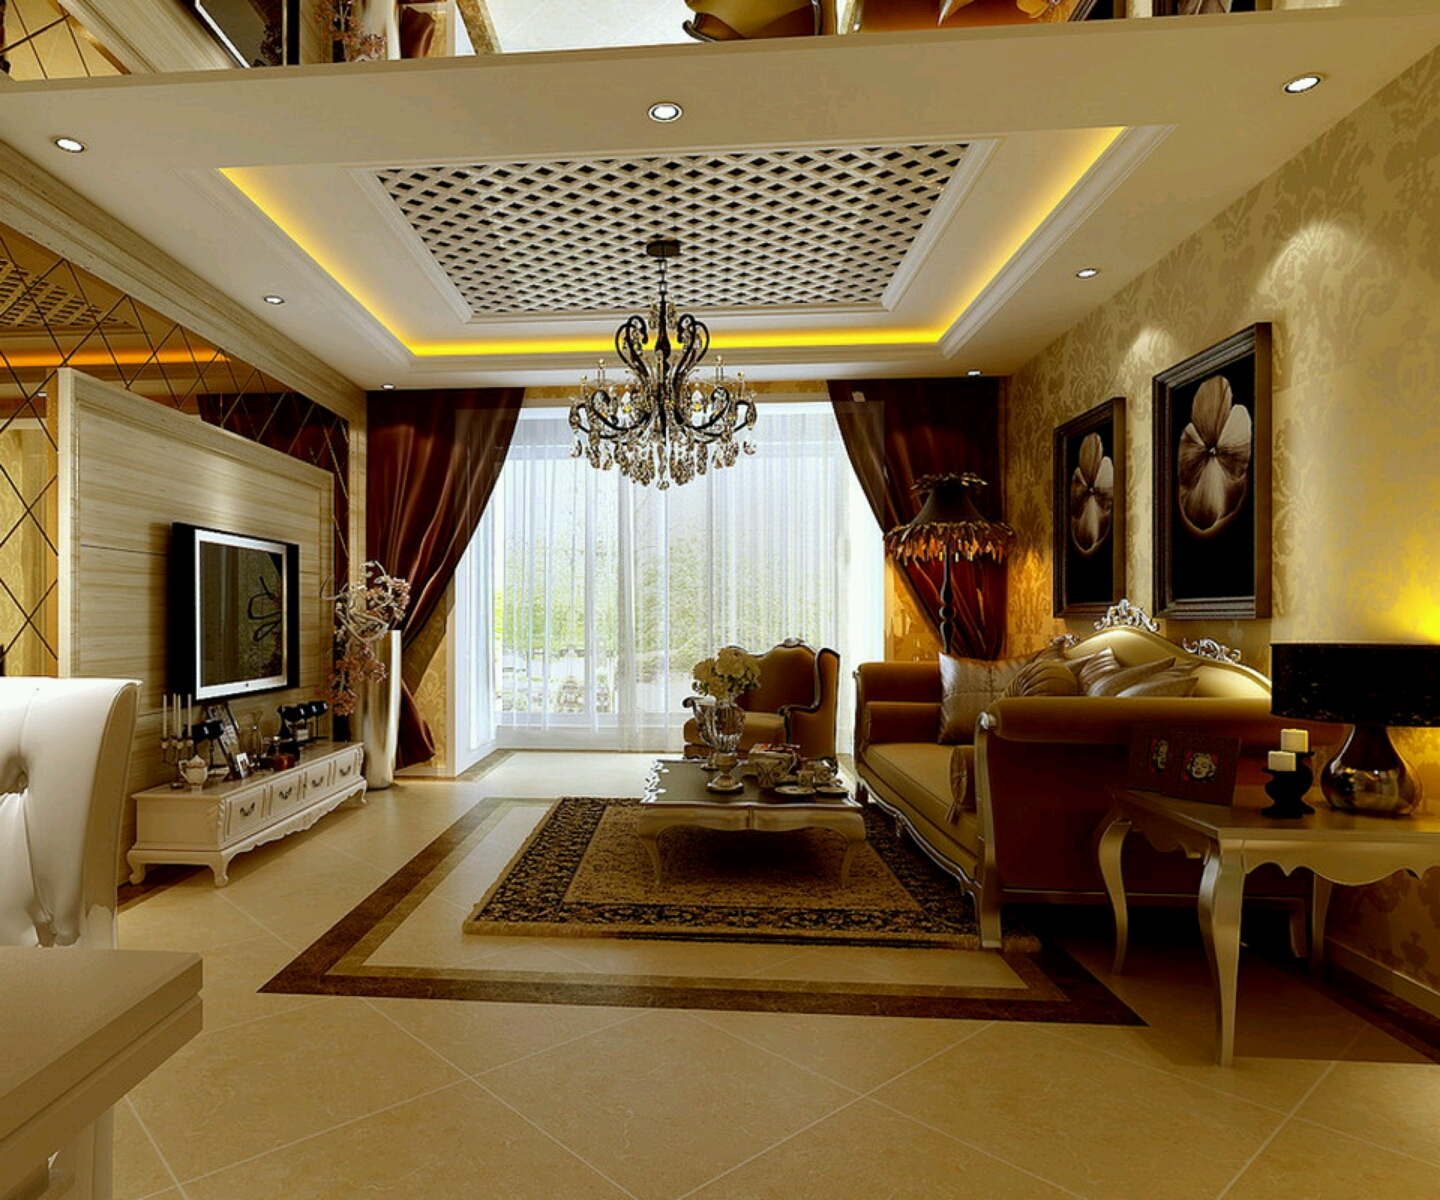 Home Internal Design: Luxury Homes Interior Decoration Living Room Designs Ideas